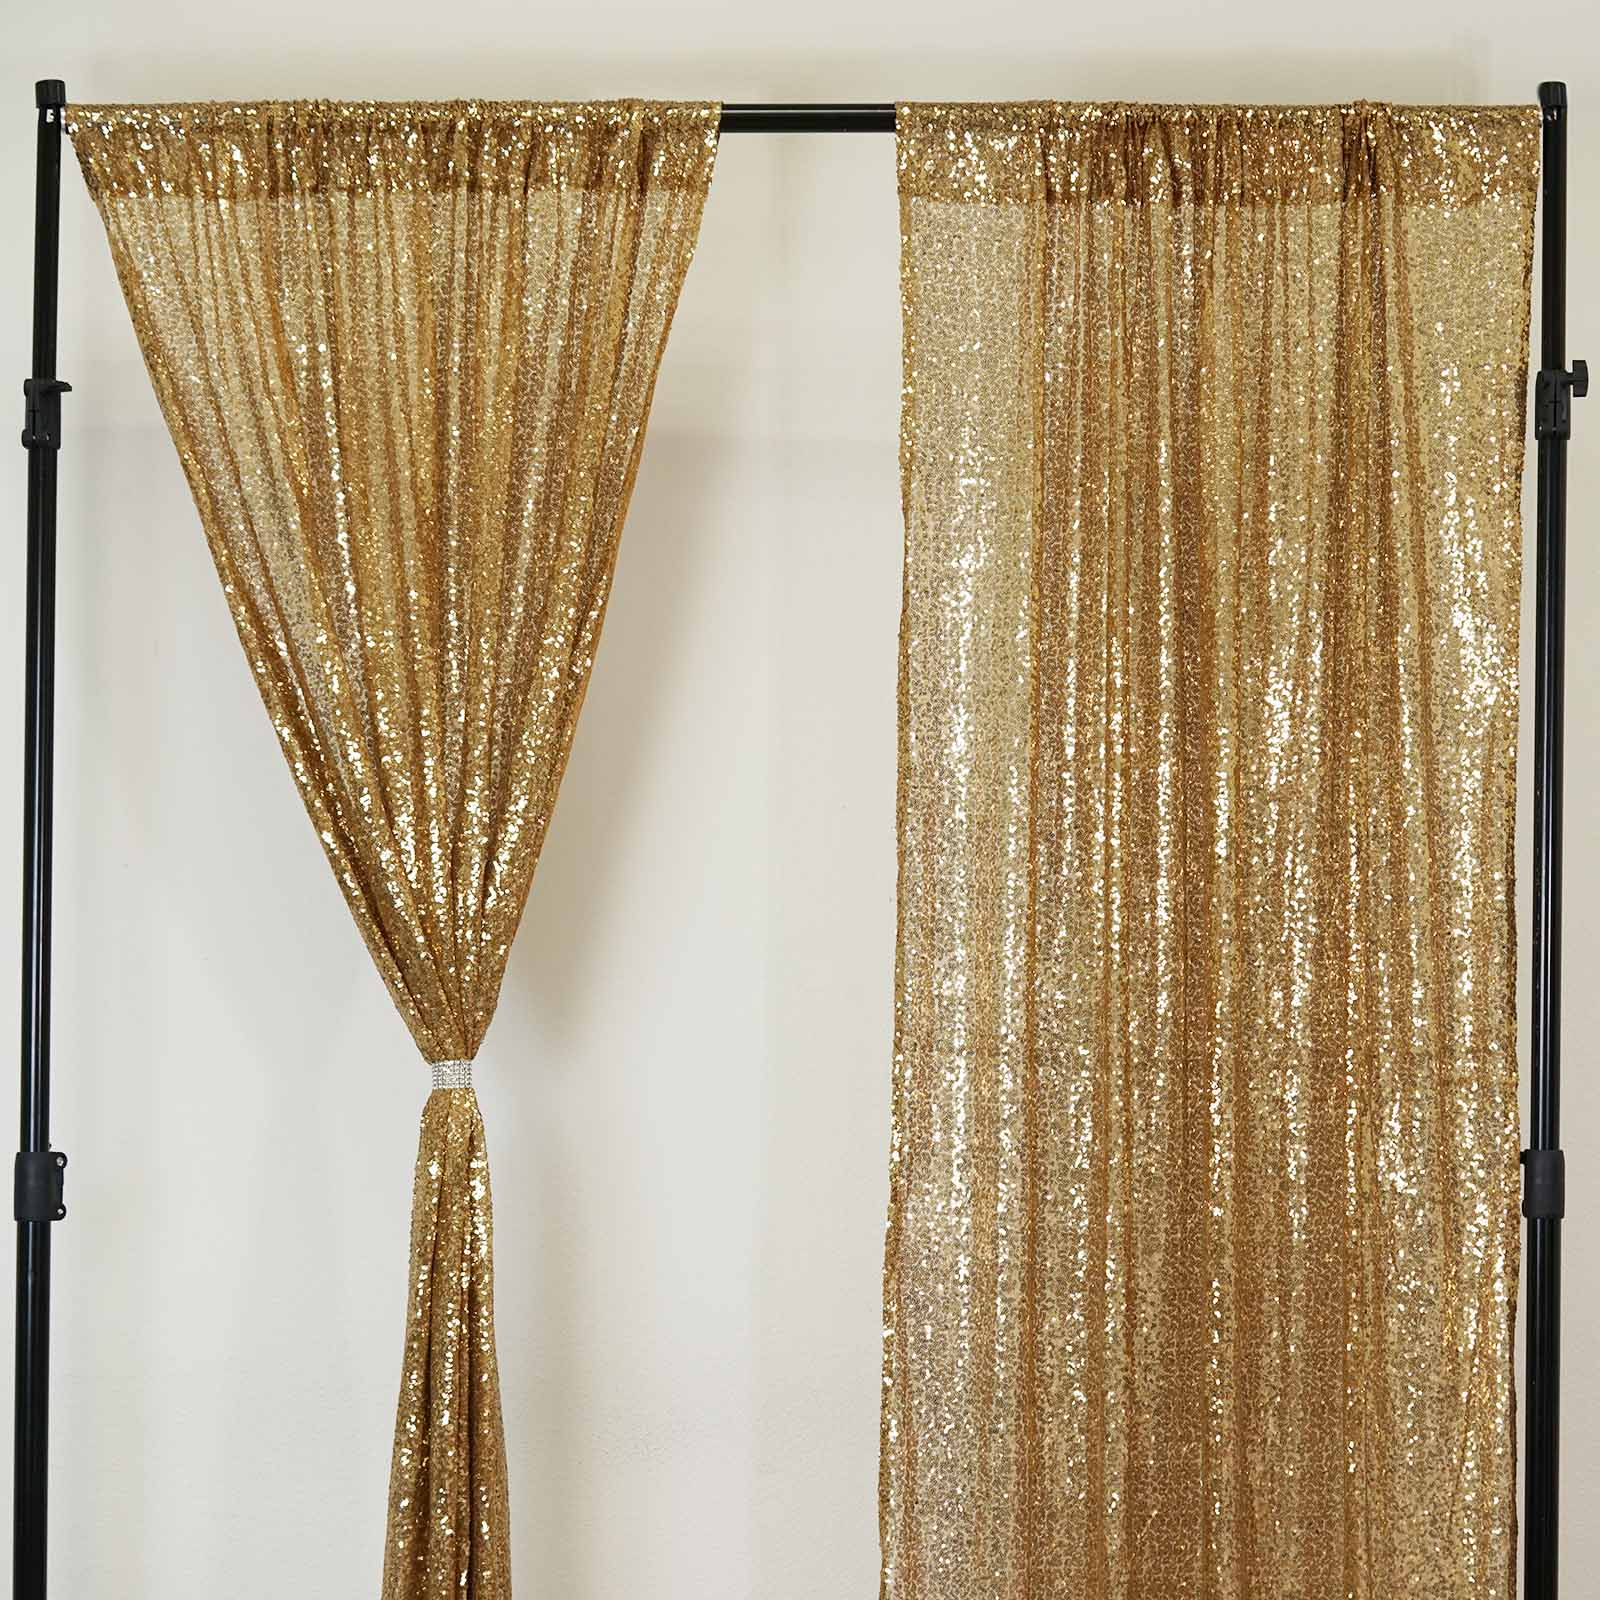 Glitzy Sequin Curtains 52x84 Gold Pack Of 2 Window Treatment Panels With Rod Pockets